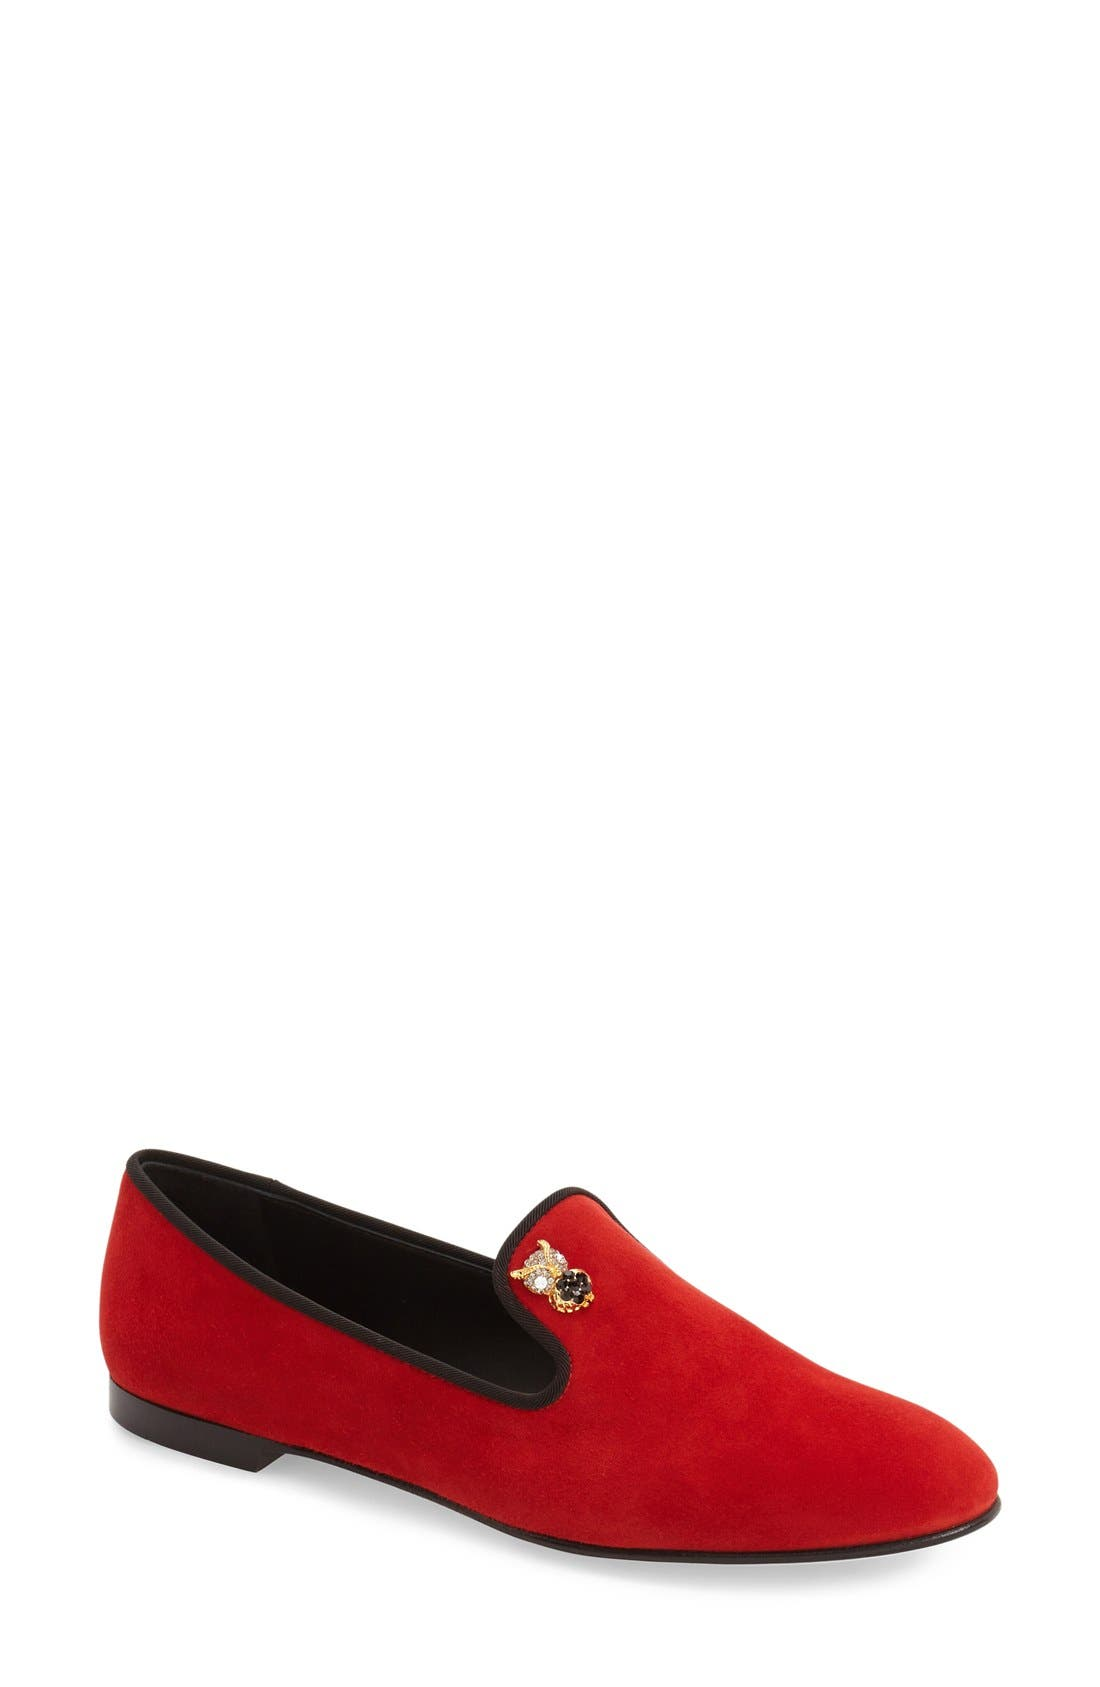 Main Image - Giuseppe Zanotti 'Dalila' Loafer (Women) (Nordstrom Exclusive)